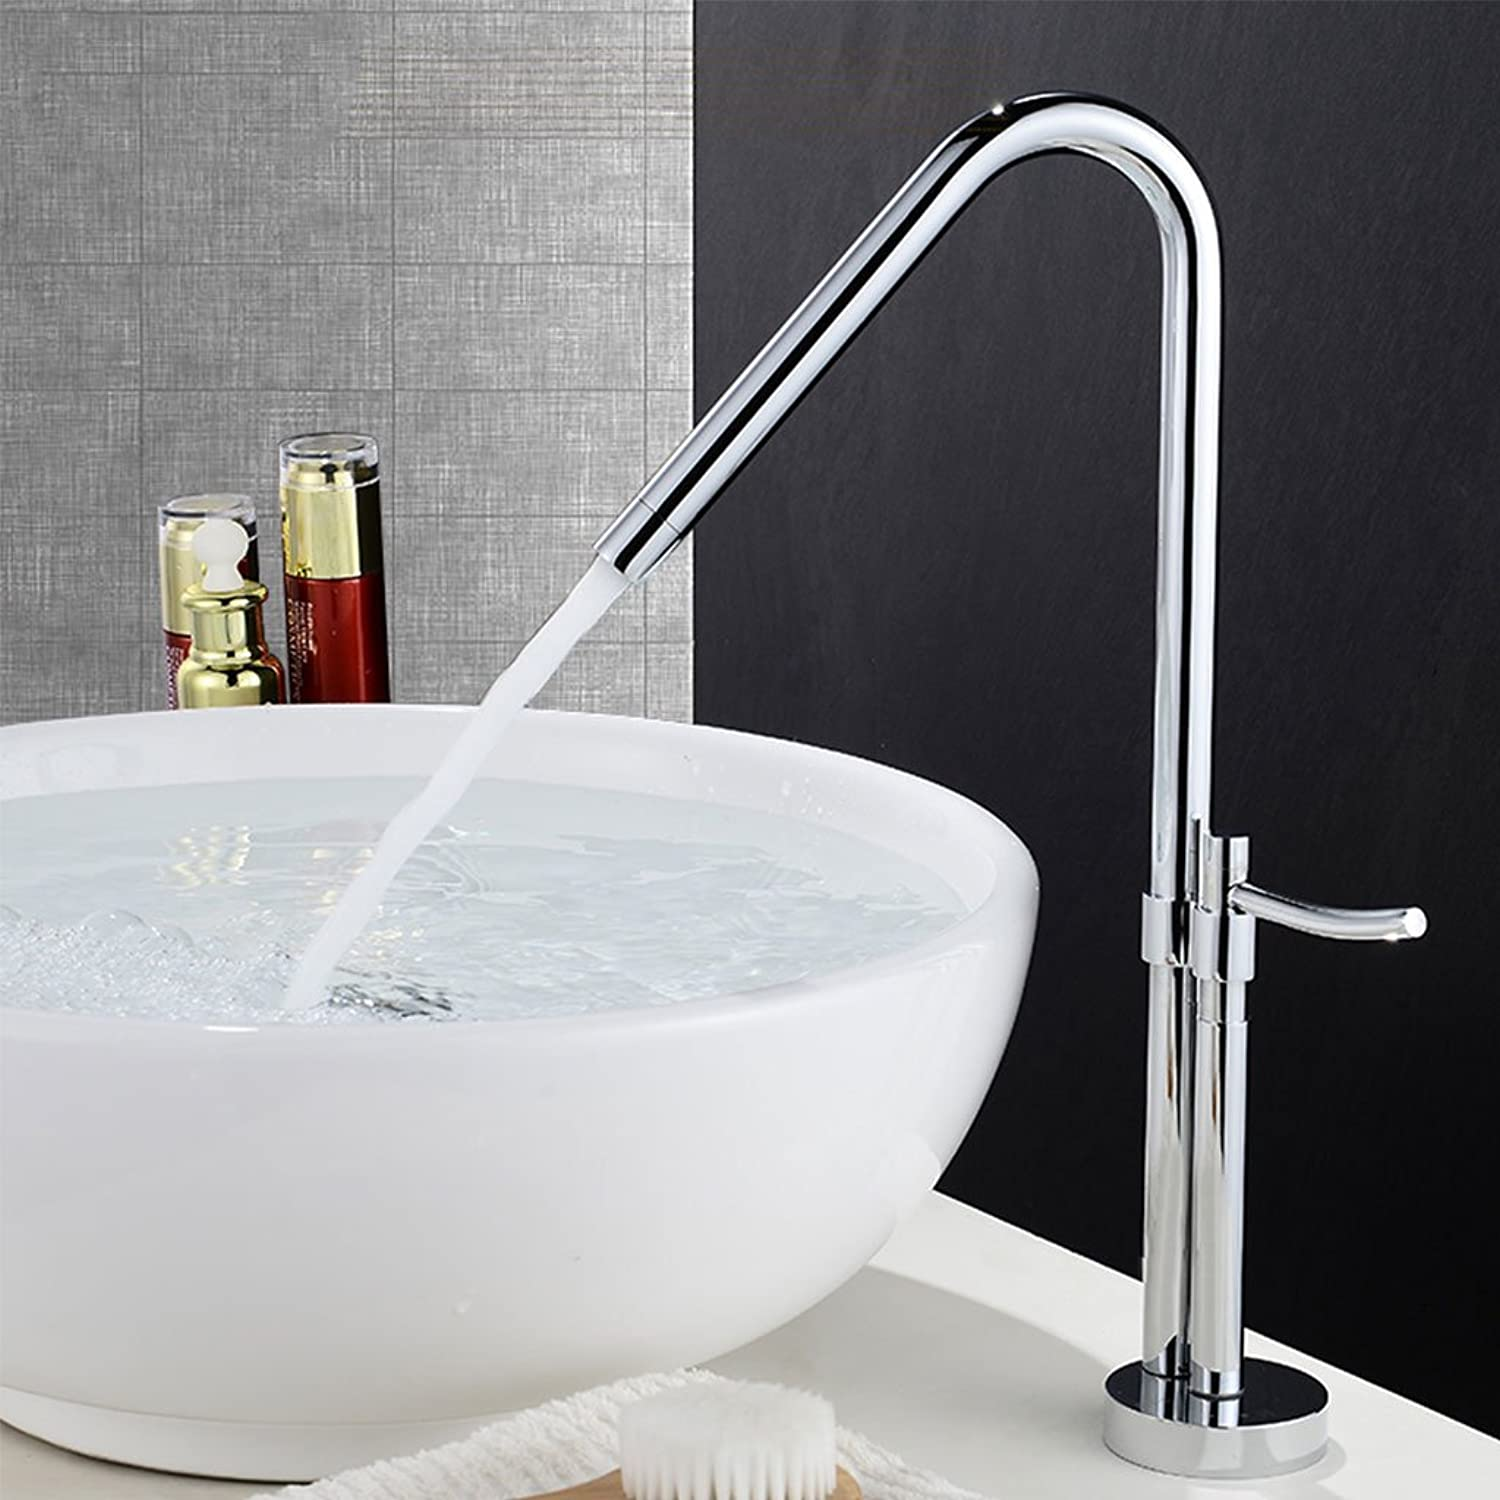 WYQLZ Modern Fashion Basin Mixer Creative High-end Hot And Cold Faucet